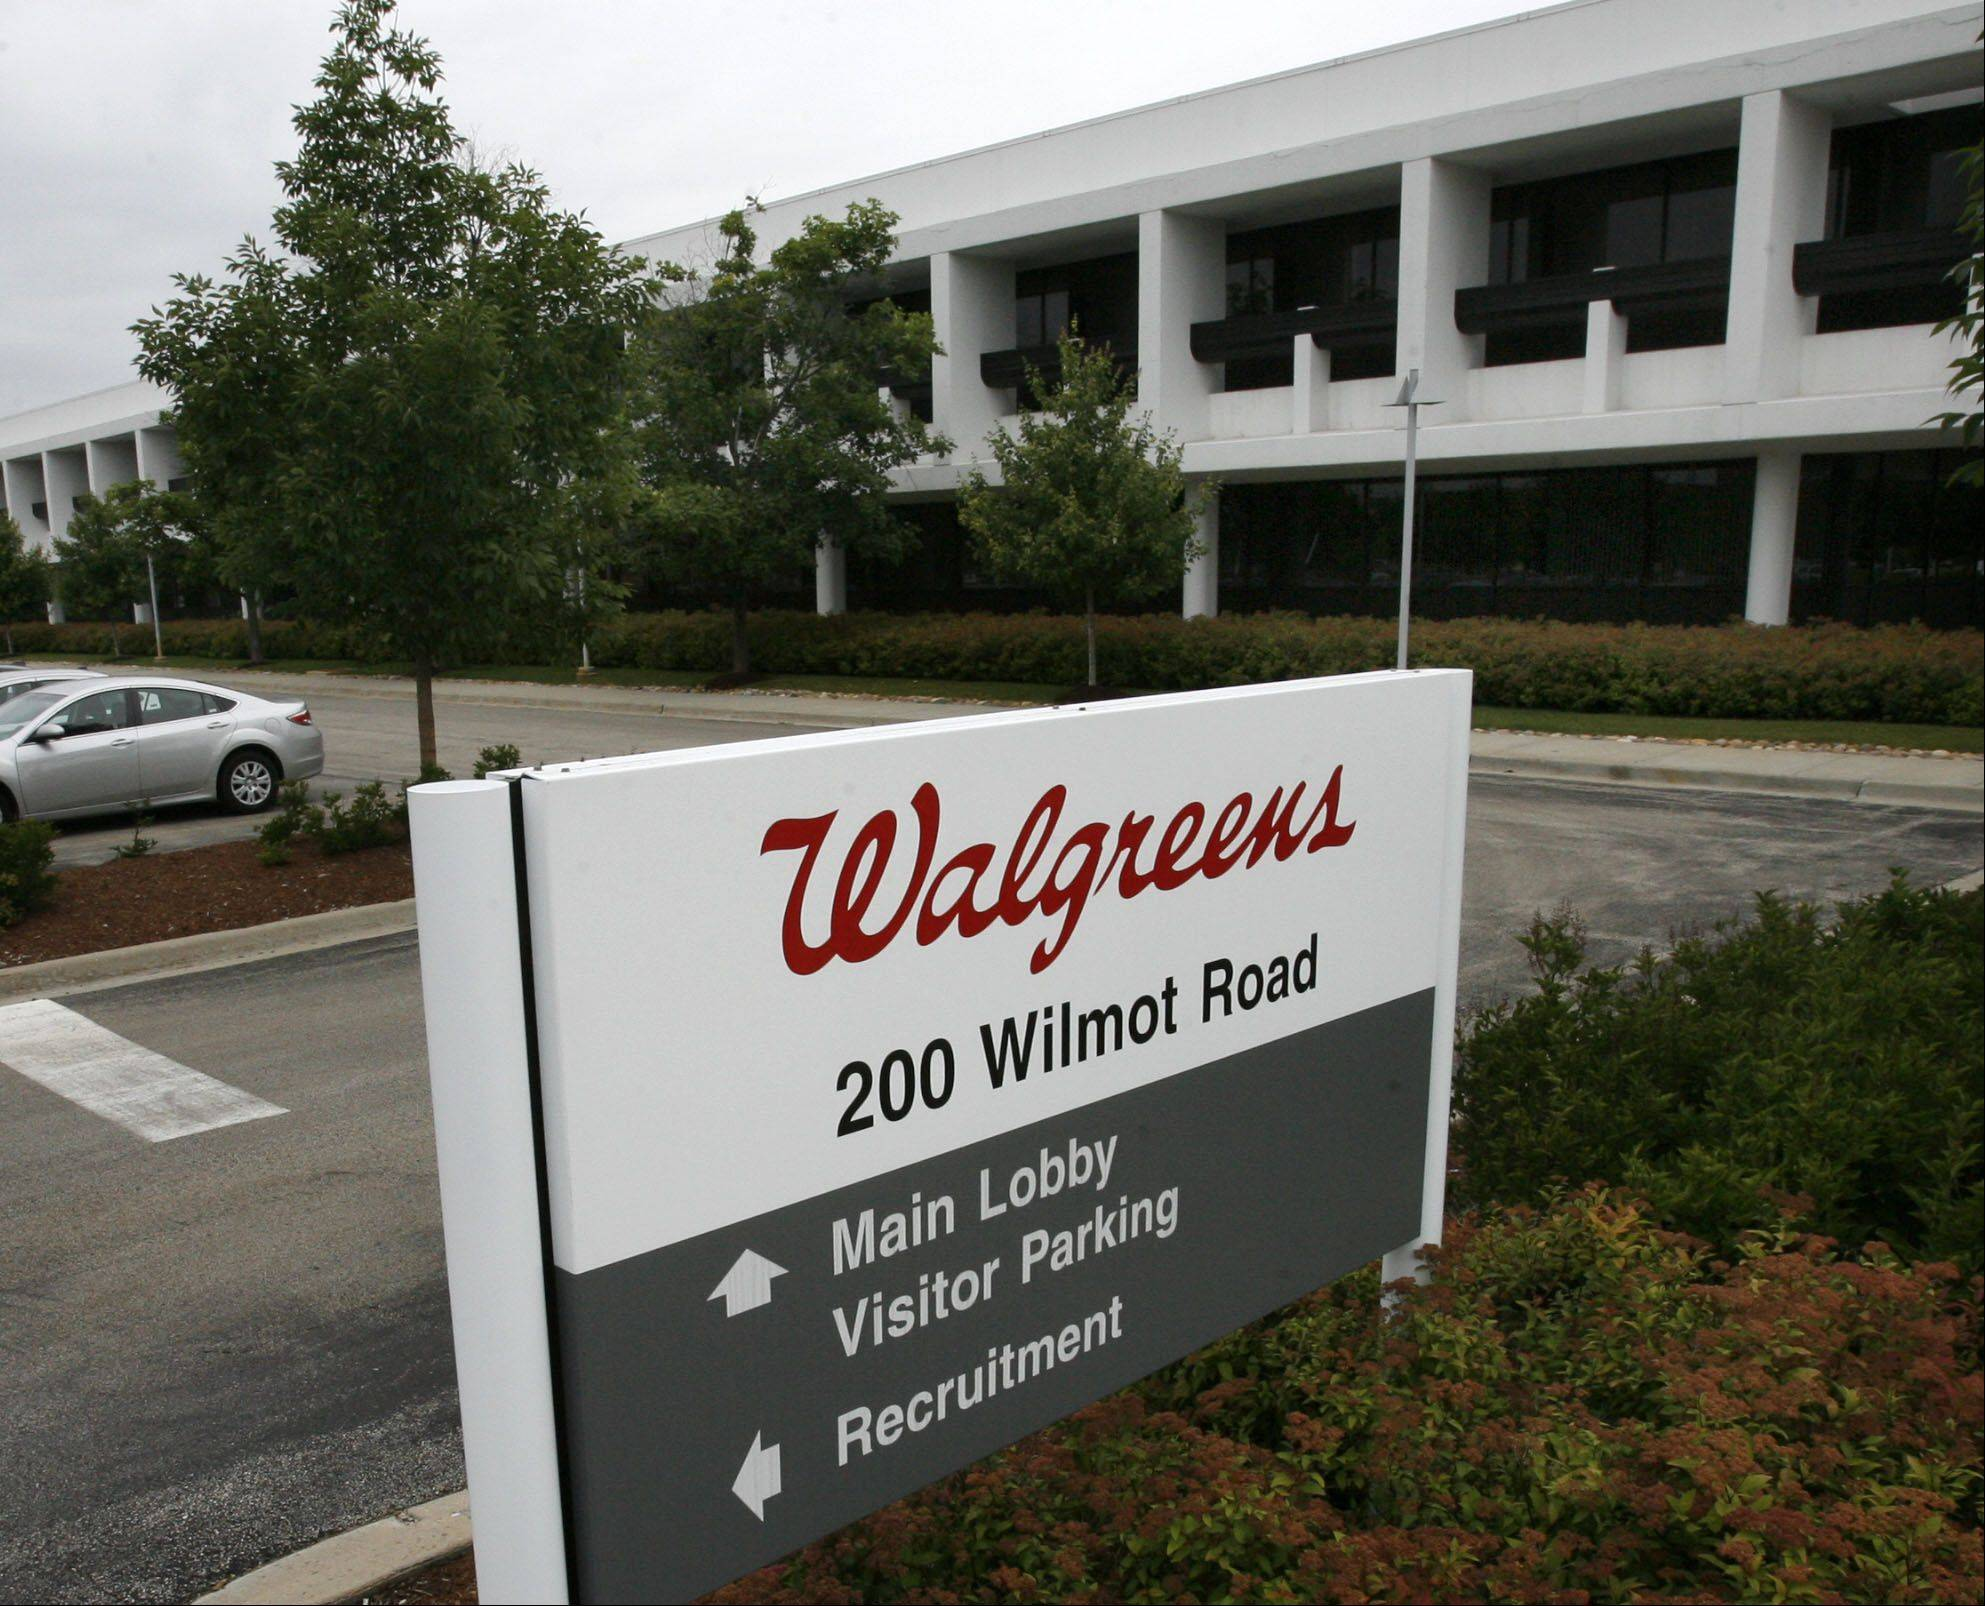 GEORGE LECLAIRE/gleclaire@dailyherald.com ¬ Walgreens Corporate Campus Headquarters sign in Deerfield.